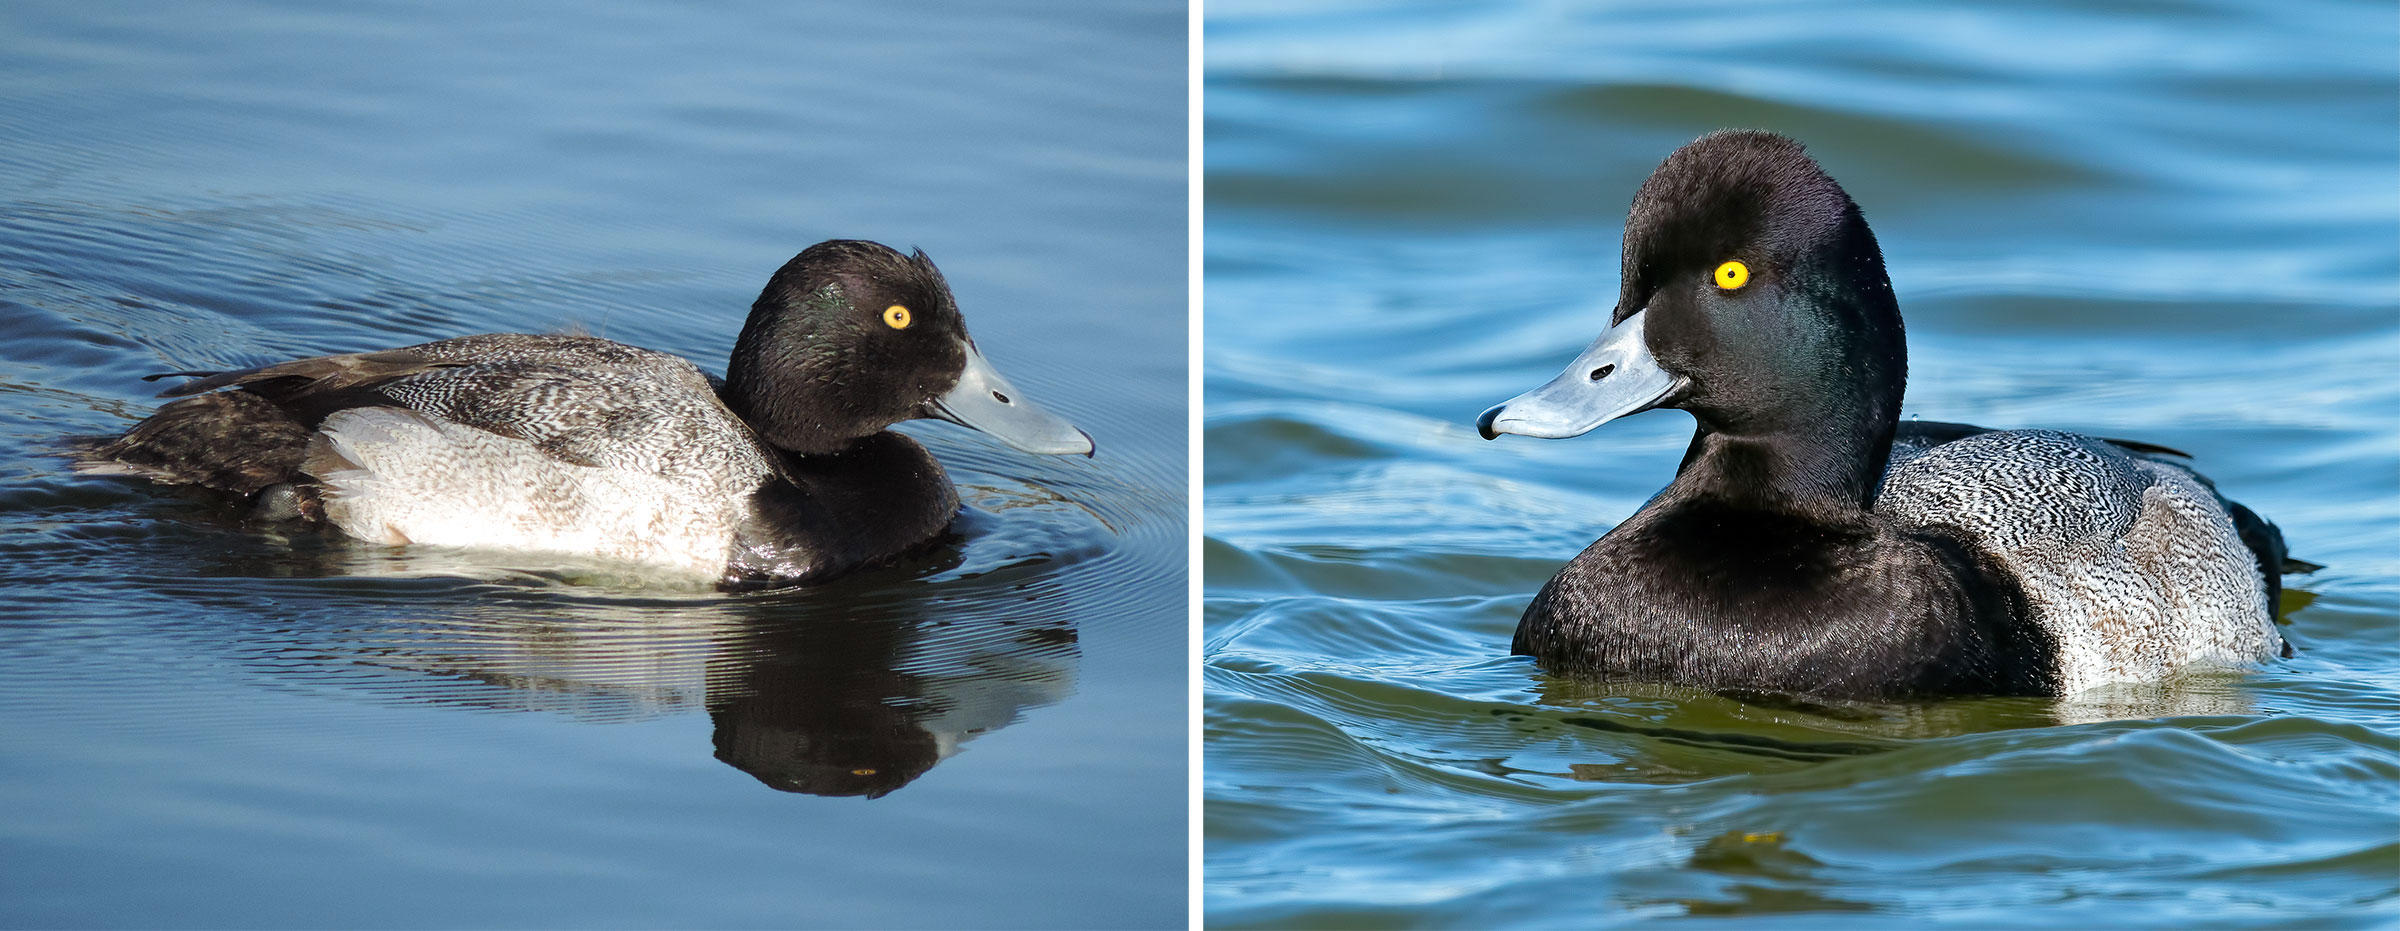 From left to right: Greater Scaup and Lesser Scaup, two of the saltiest, most confusing ducks out there. Photos: Janet Covell/Great Backyard Bird Count; Brian Kushner